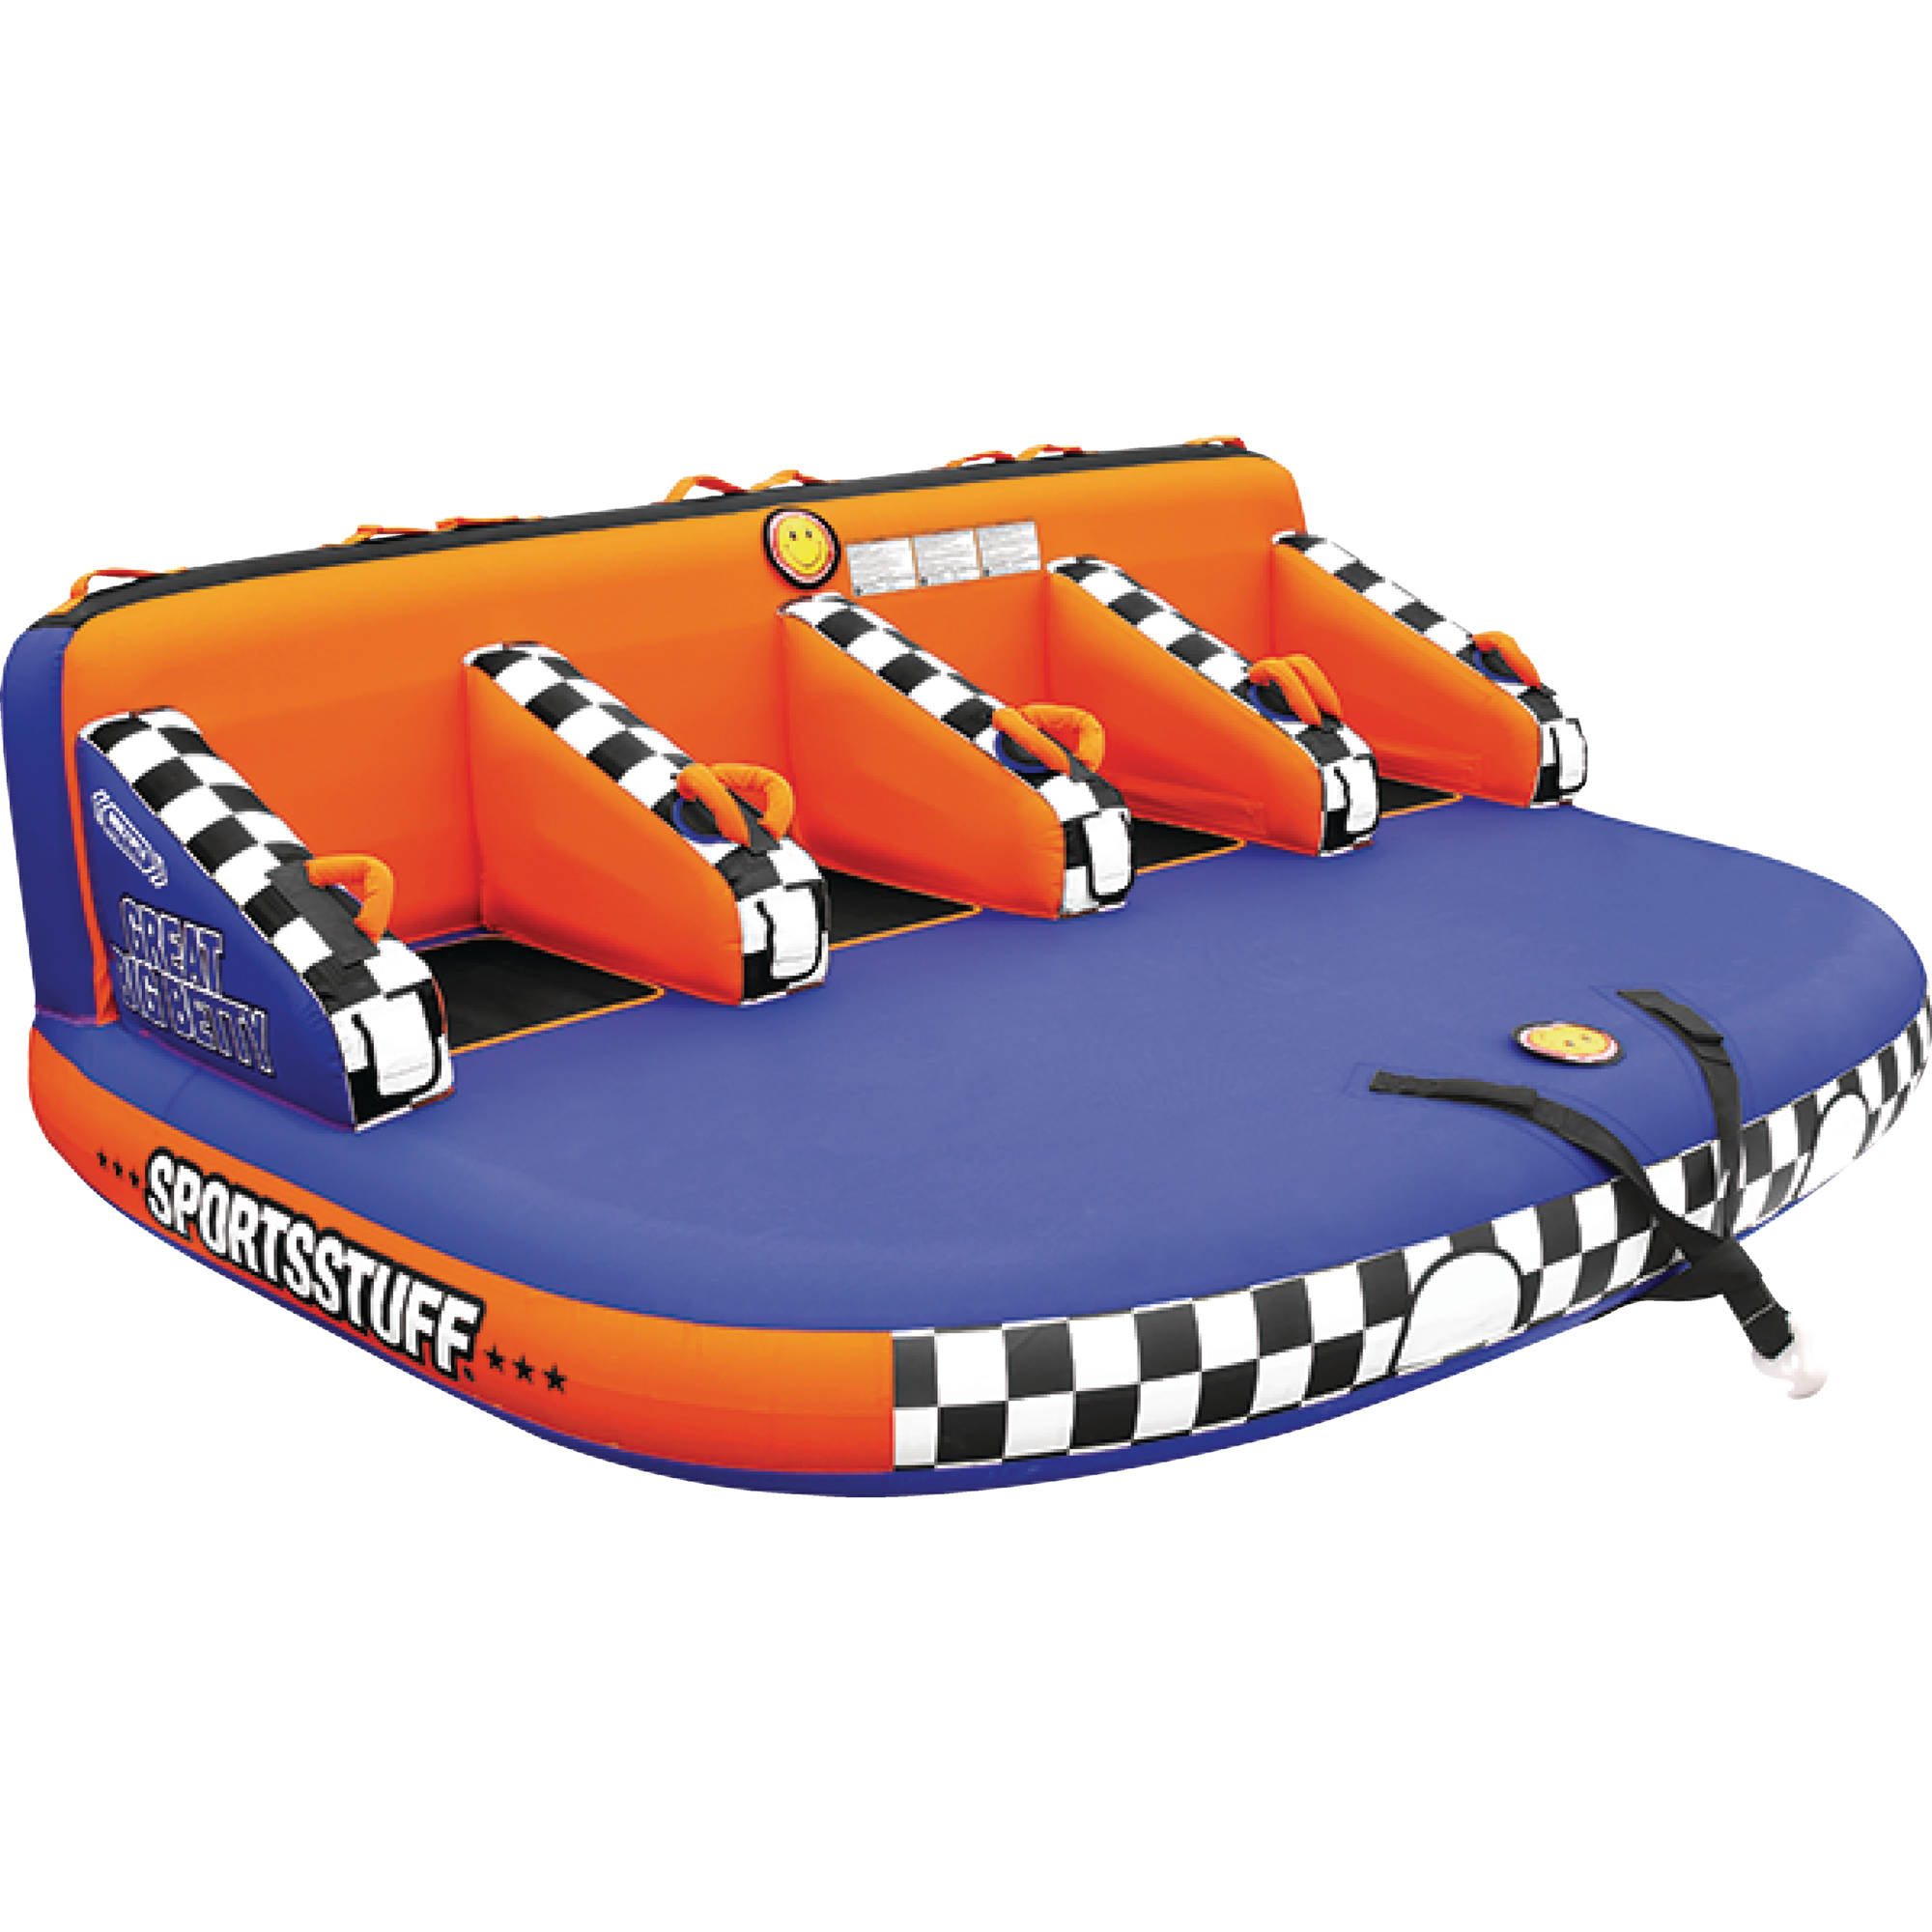 Sportsstuff 53-3004 Great Big Betty Inflatable Towable, 1-4 Rider by Kwik Tek